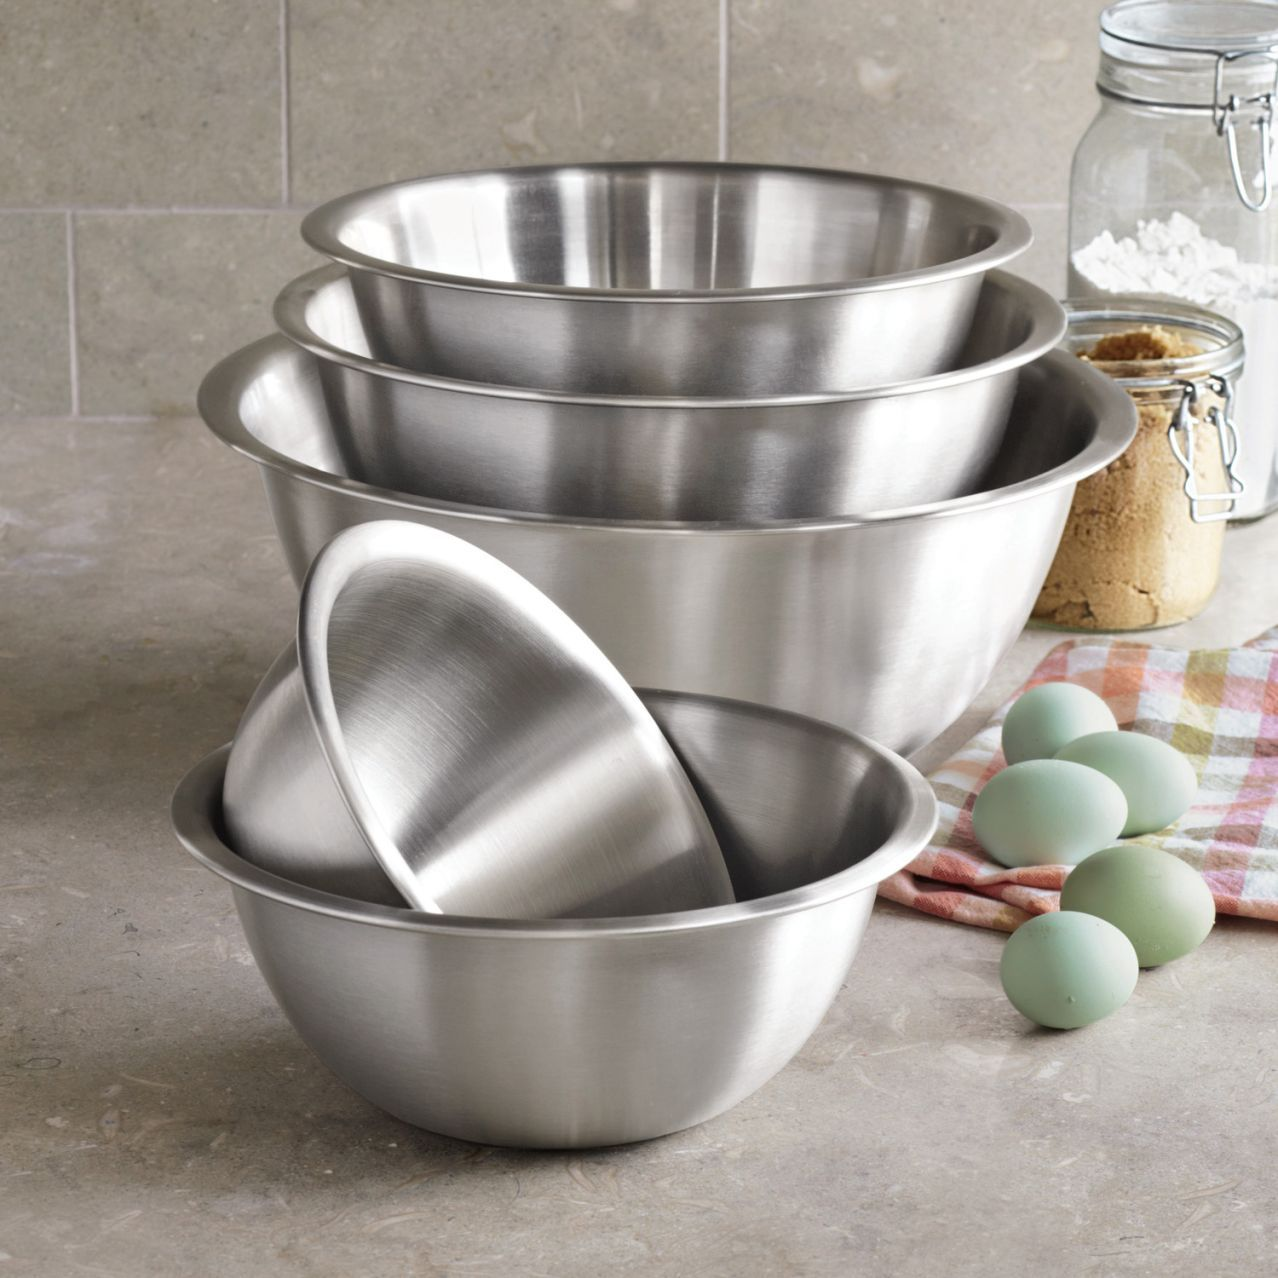 Kitchen things · Sur La Table® Stainless Steel Bowls ... & Sur La Table® Stainless Steel Bowls | Sur La Table | Xmas ...